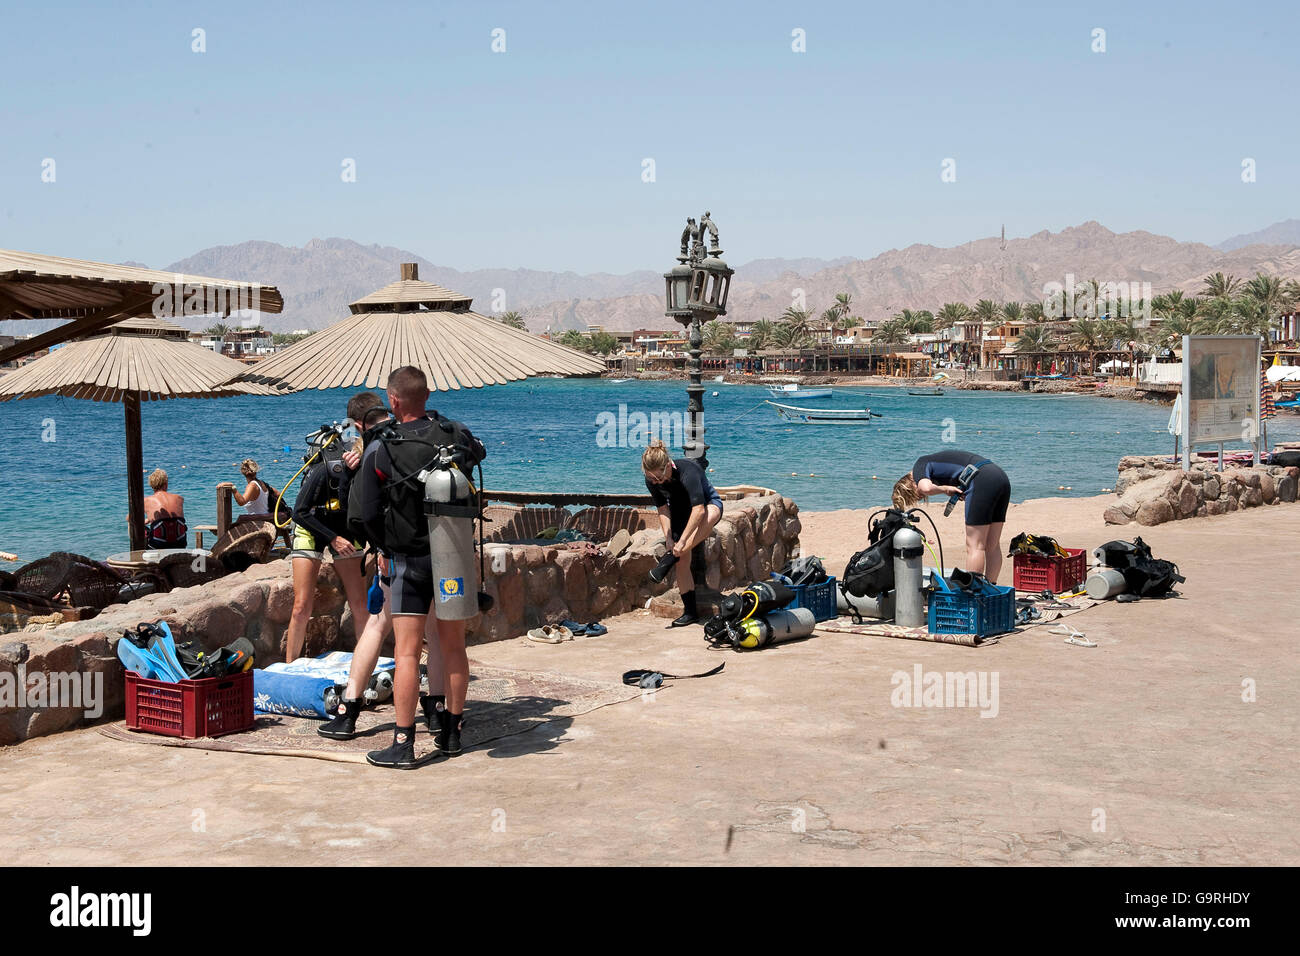 Divers, equipment, diving gear, scuba diving, Dahab, South Sinai Governorate, Egypt - Stock Image